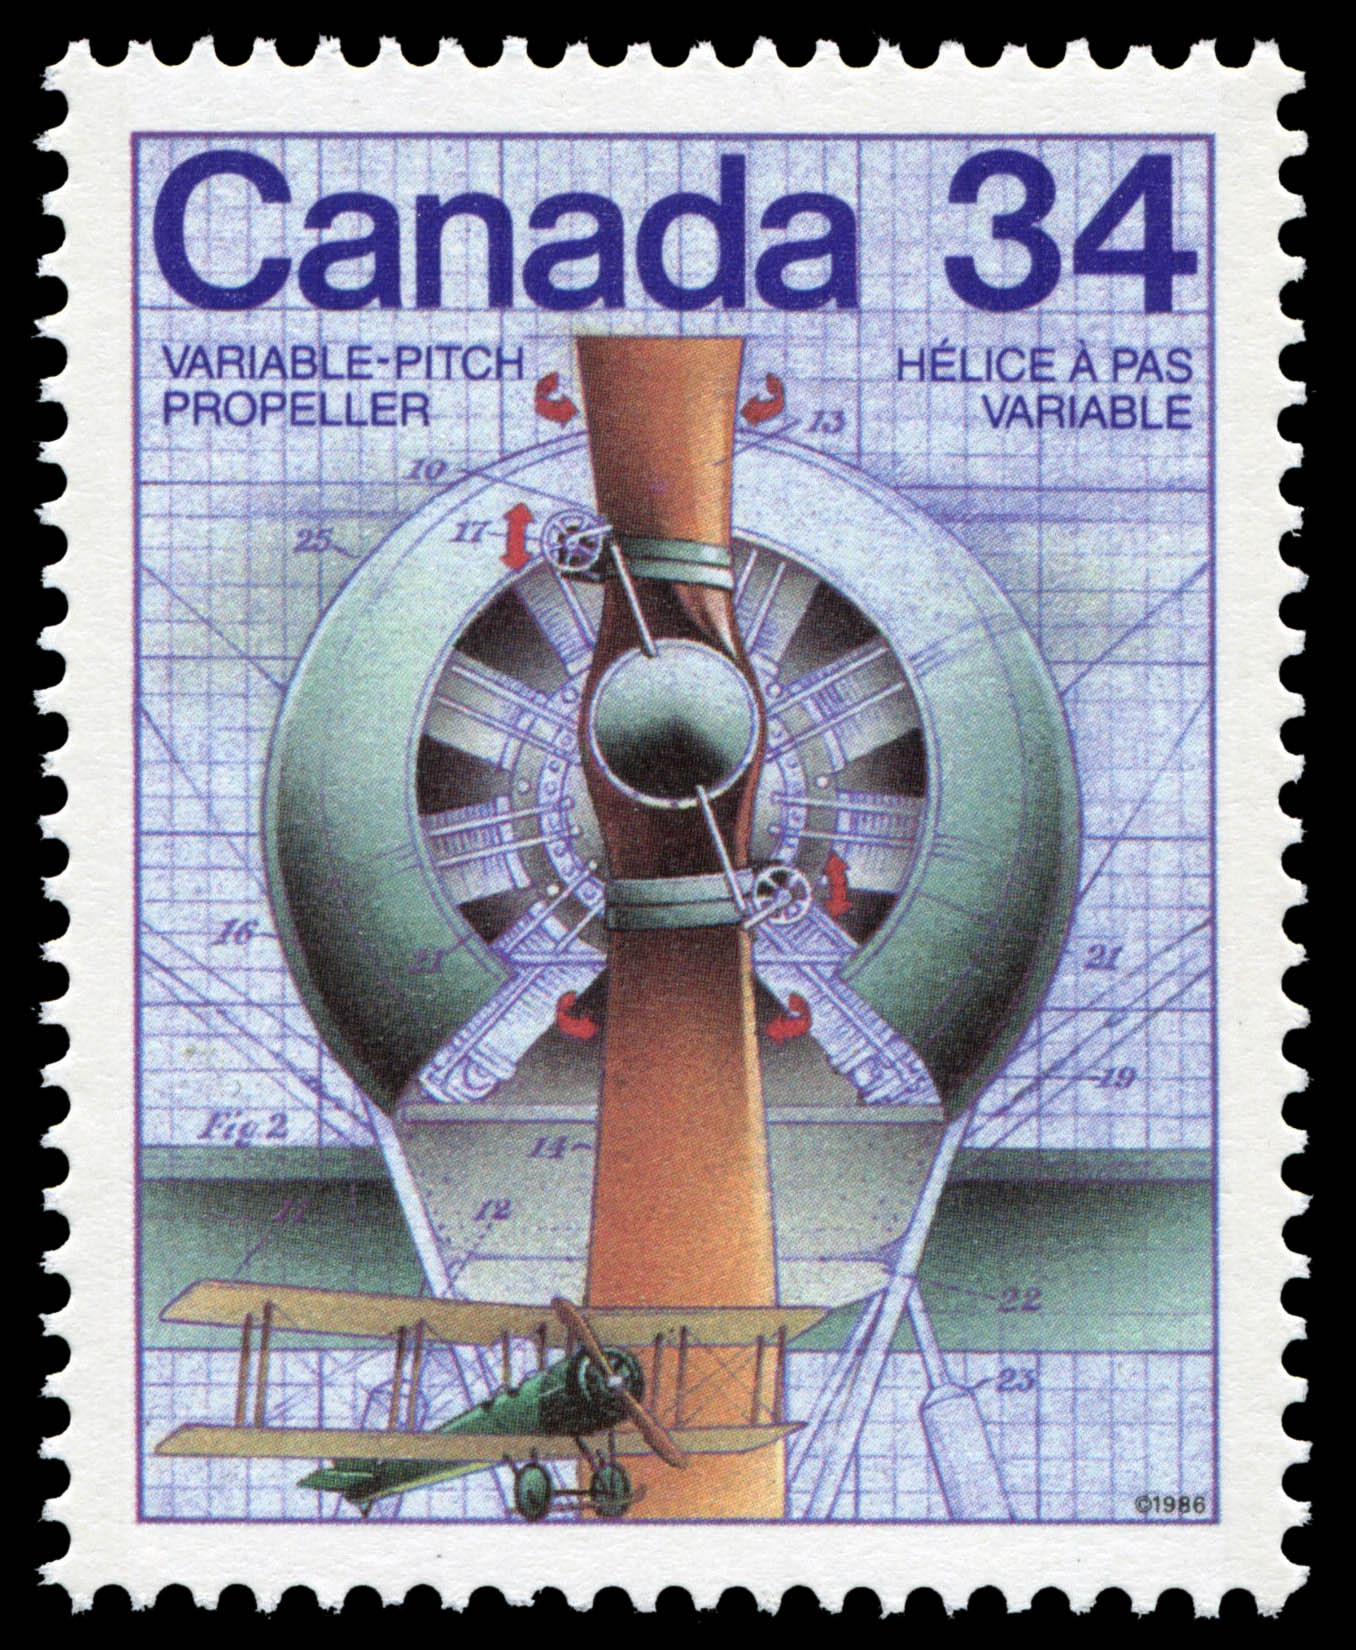 Variable-Pitch Propeller Canada Postage Stamp